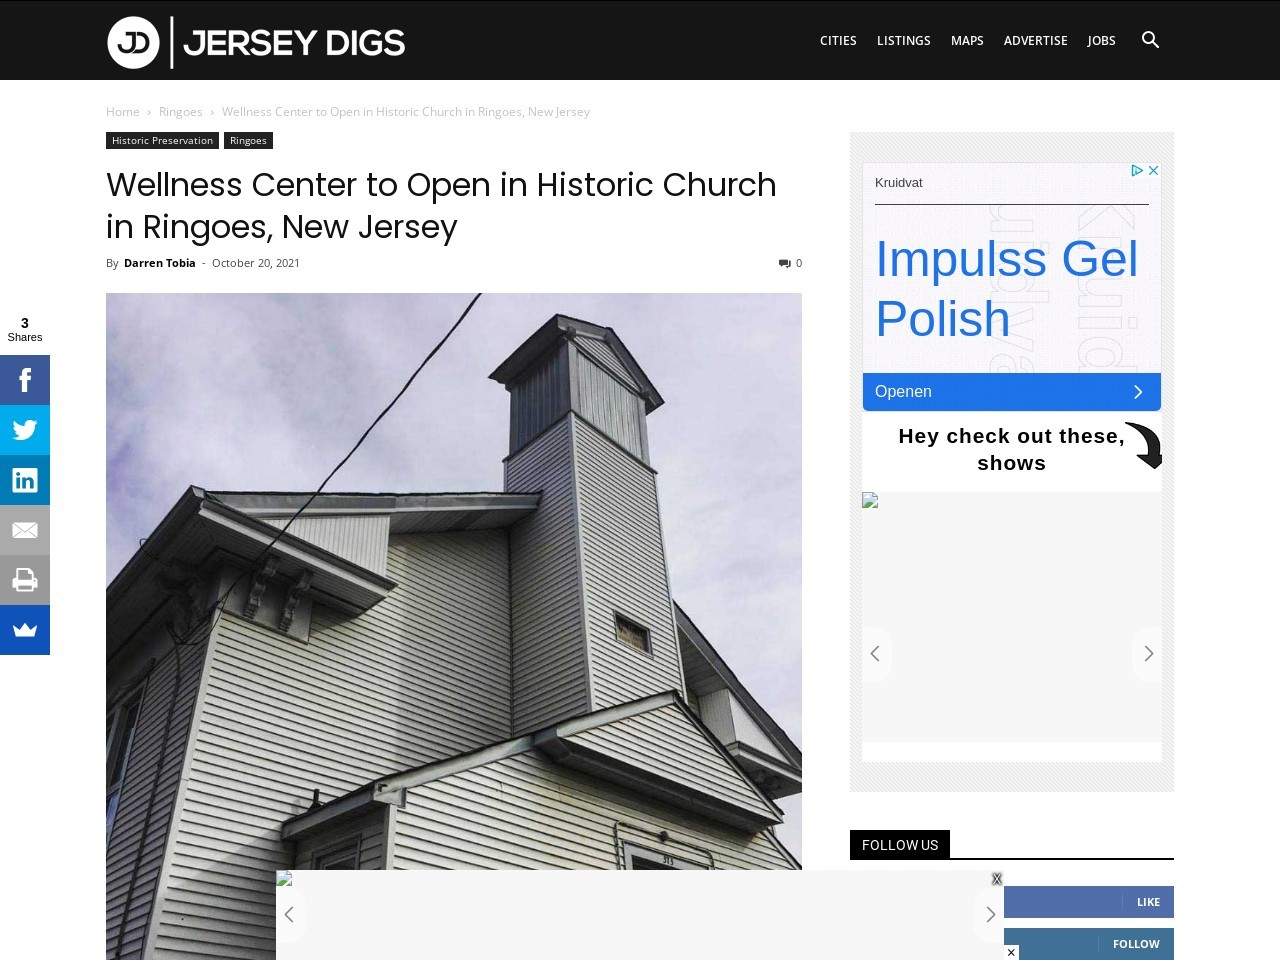 Wellness Center to Open in Historic Church in Ringoes, New Jersey